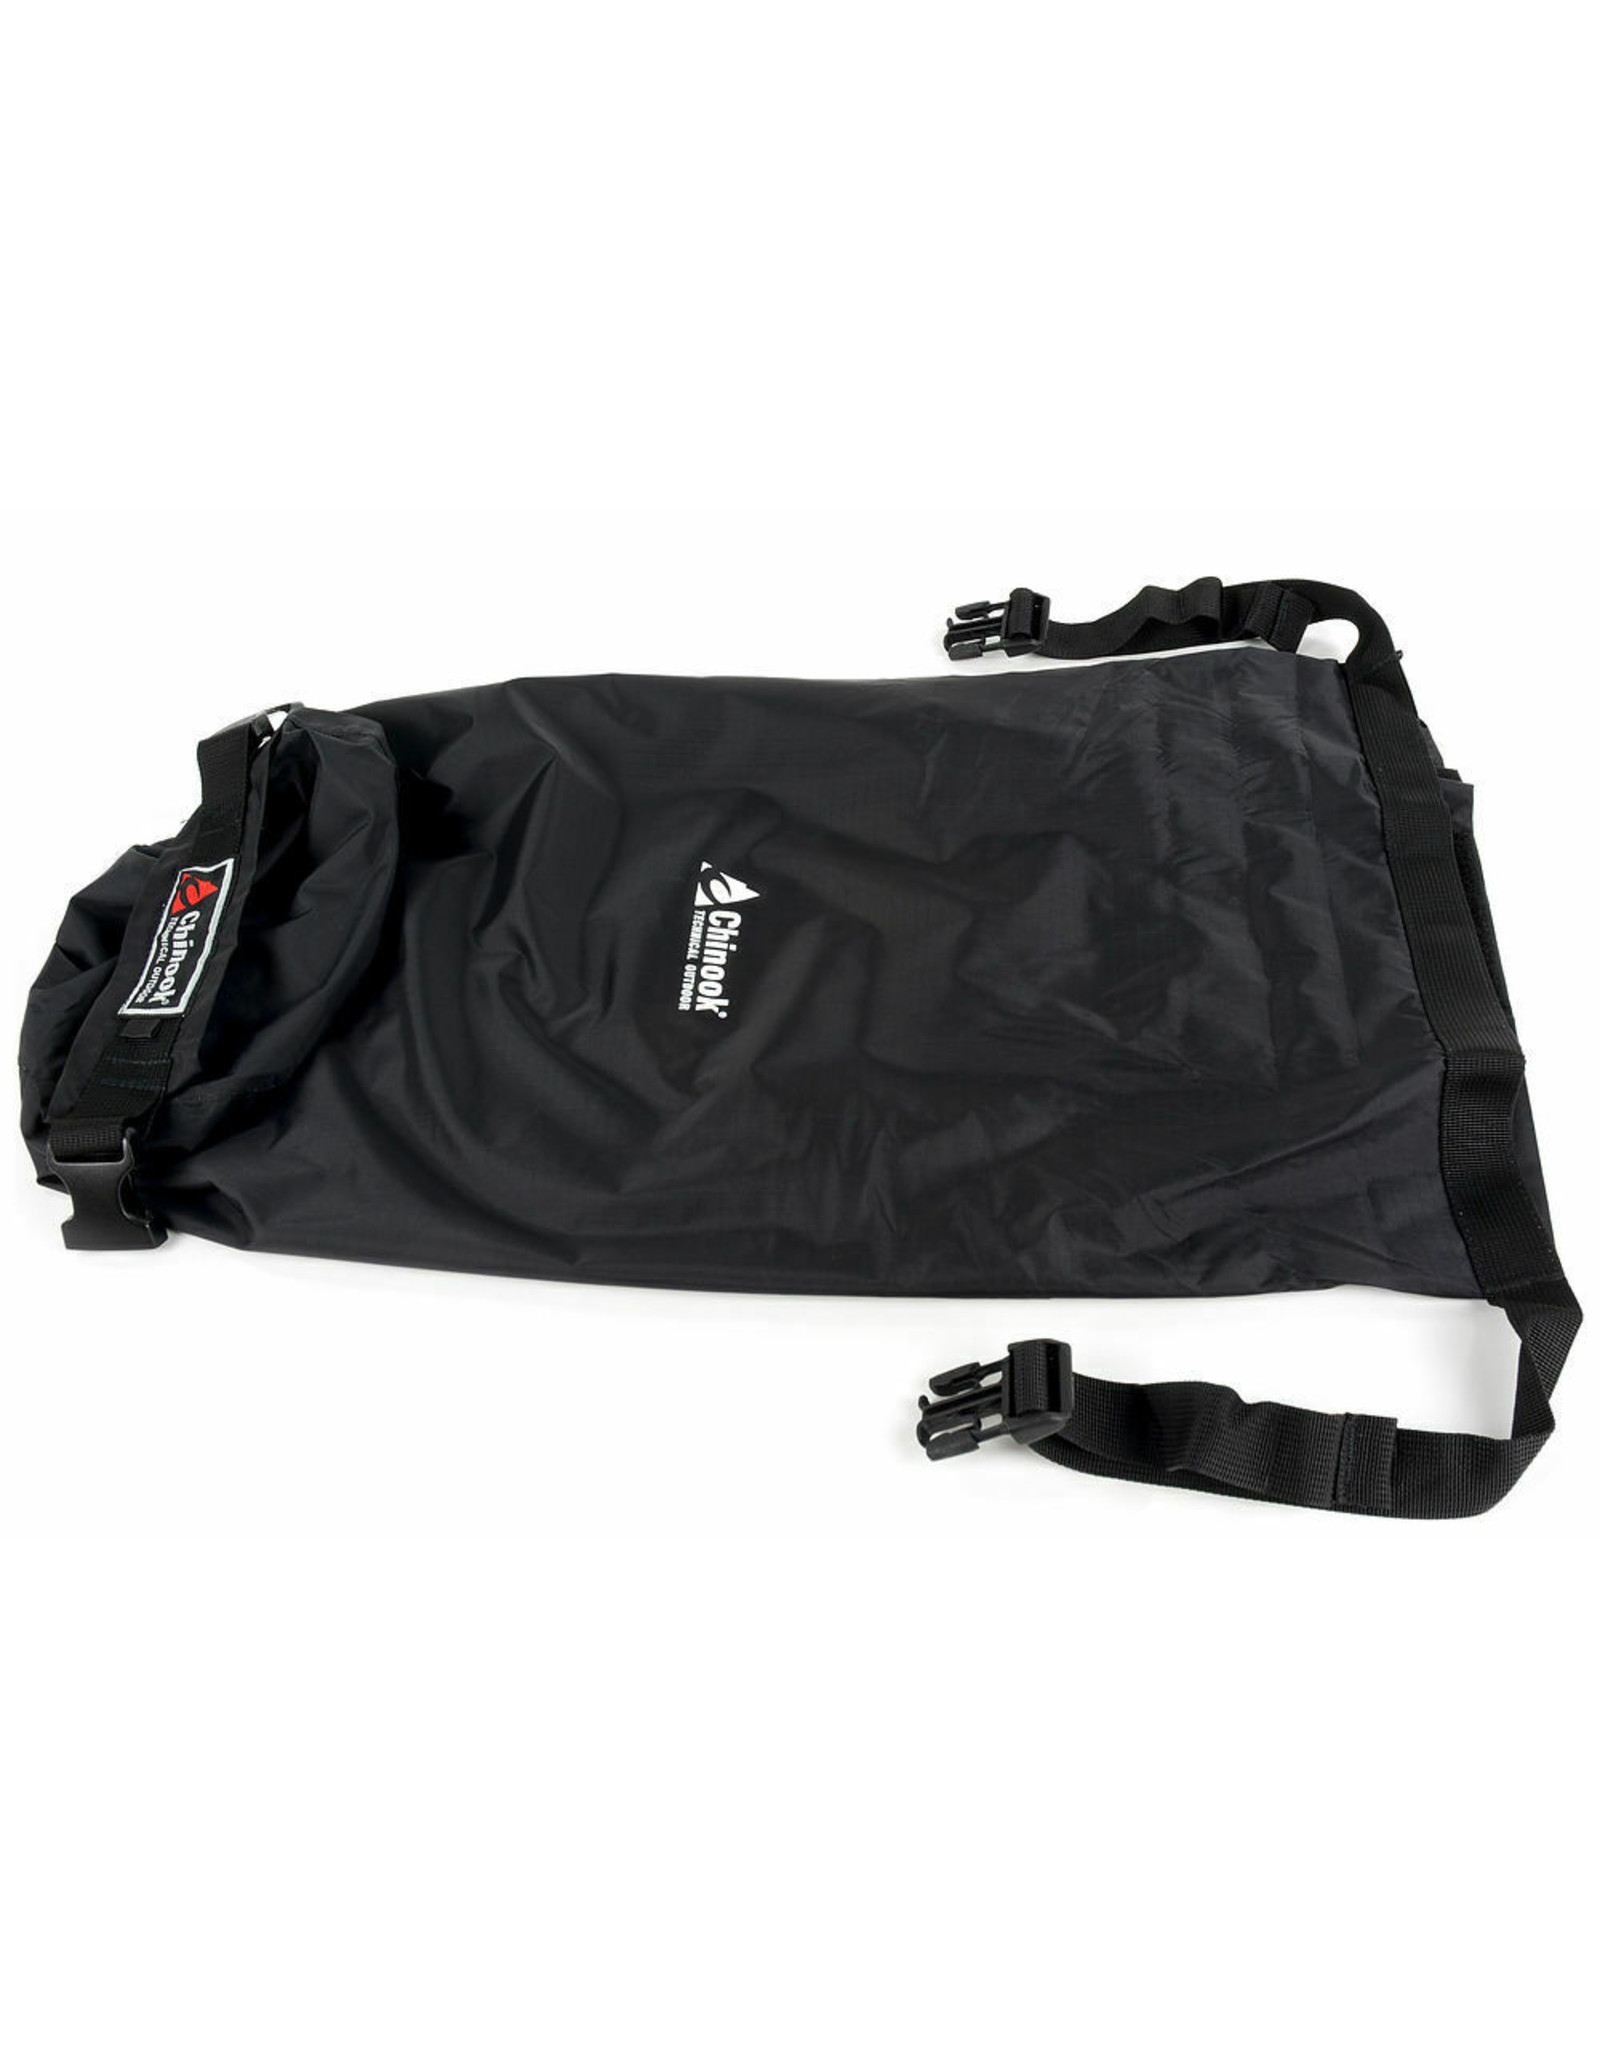 CHINOOK TECHNICAL OUTDOOR ULTRALITE COMPRESSION DRYSACK